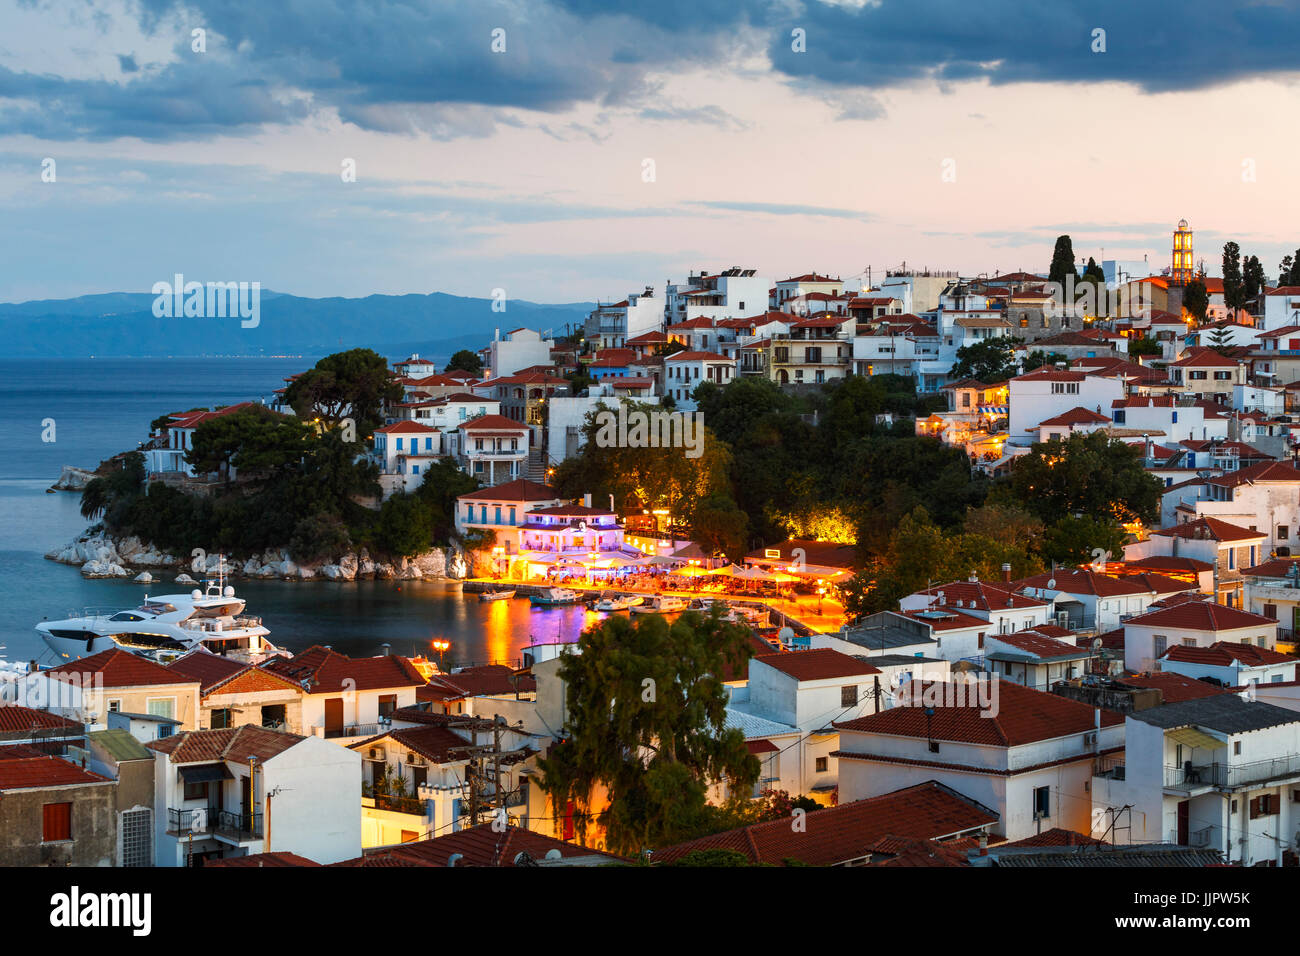 Evening view of Skiathos town in Sporades, Greece. - Stock Image